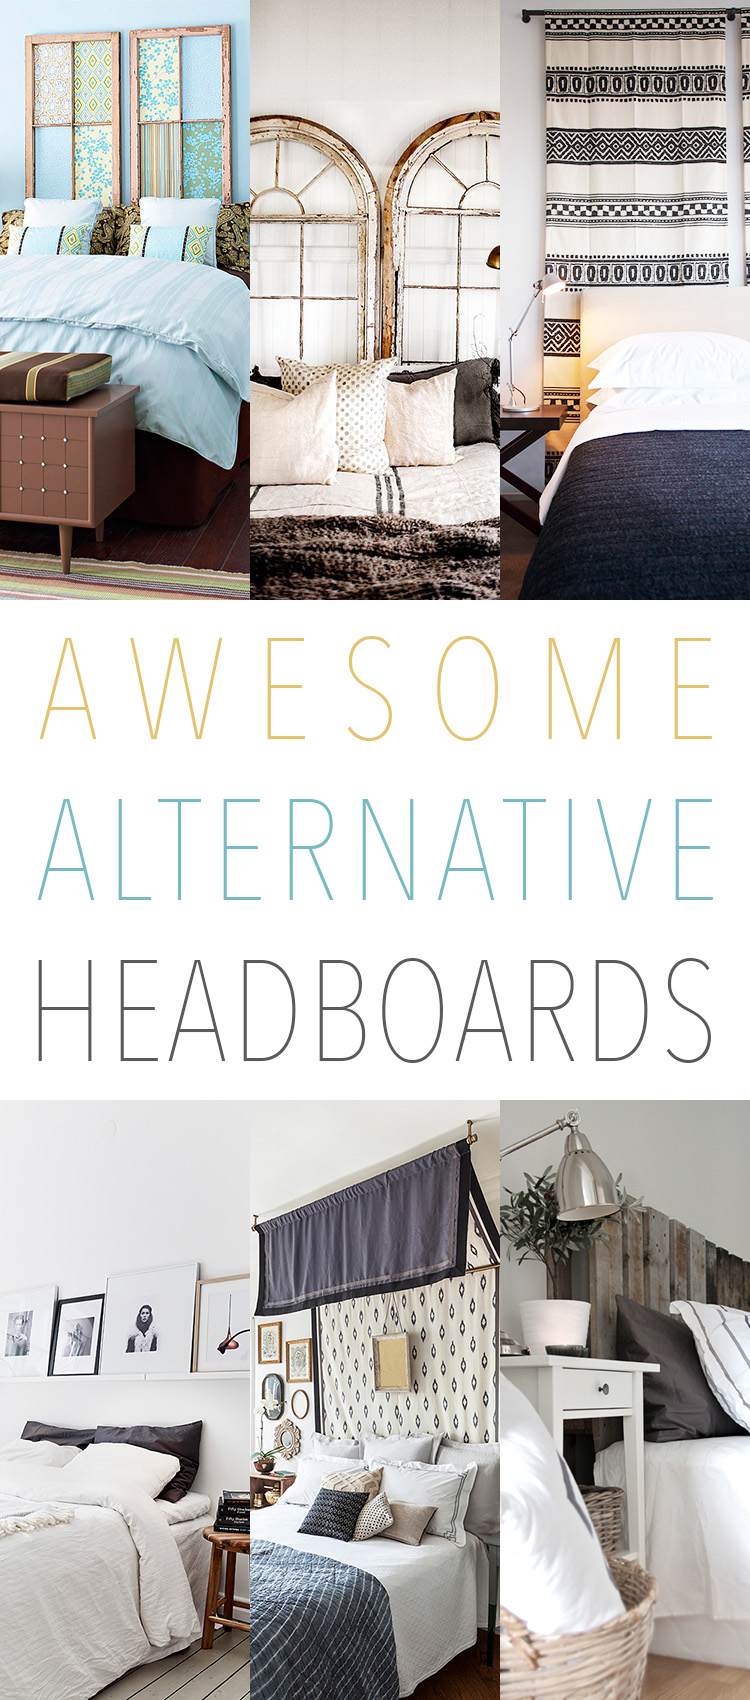 23 Awesome Alternative Headboards The Cottage Market